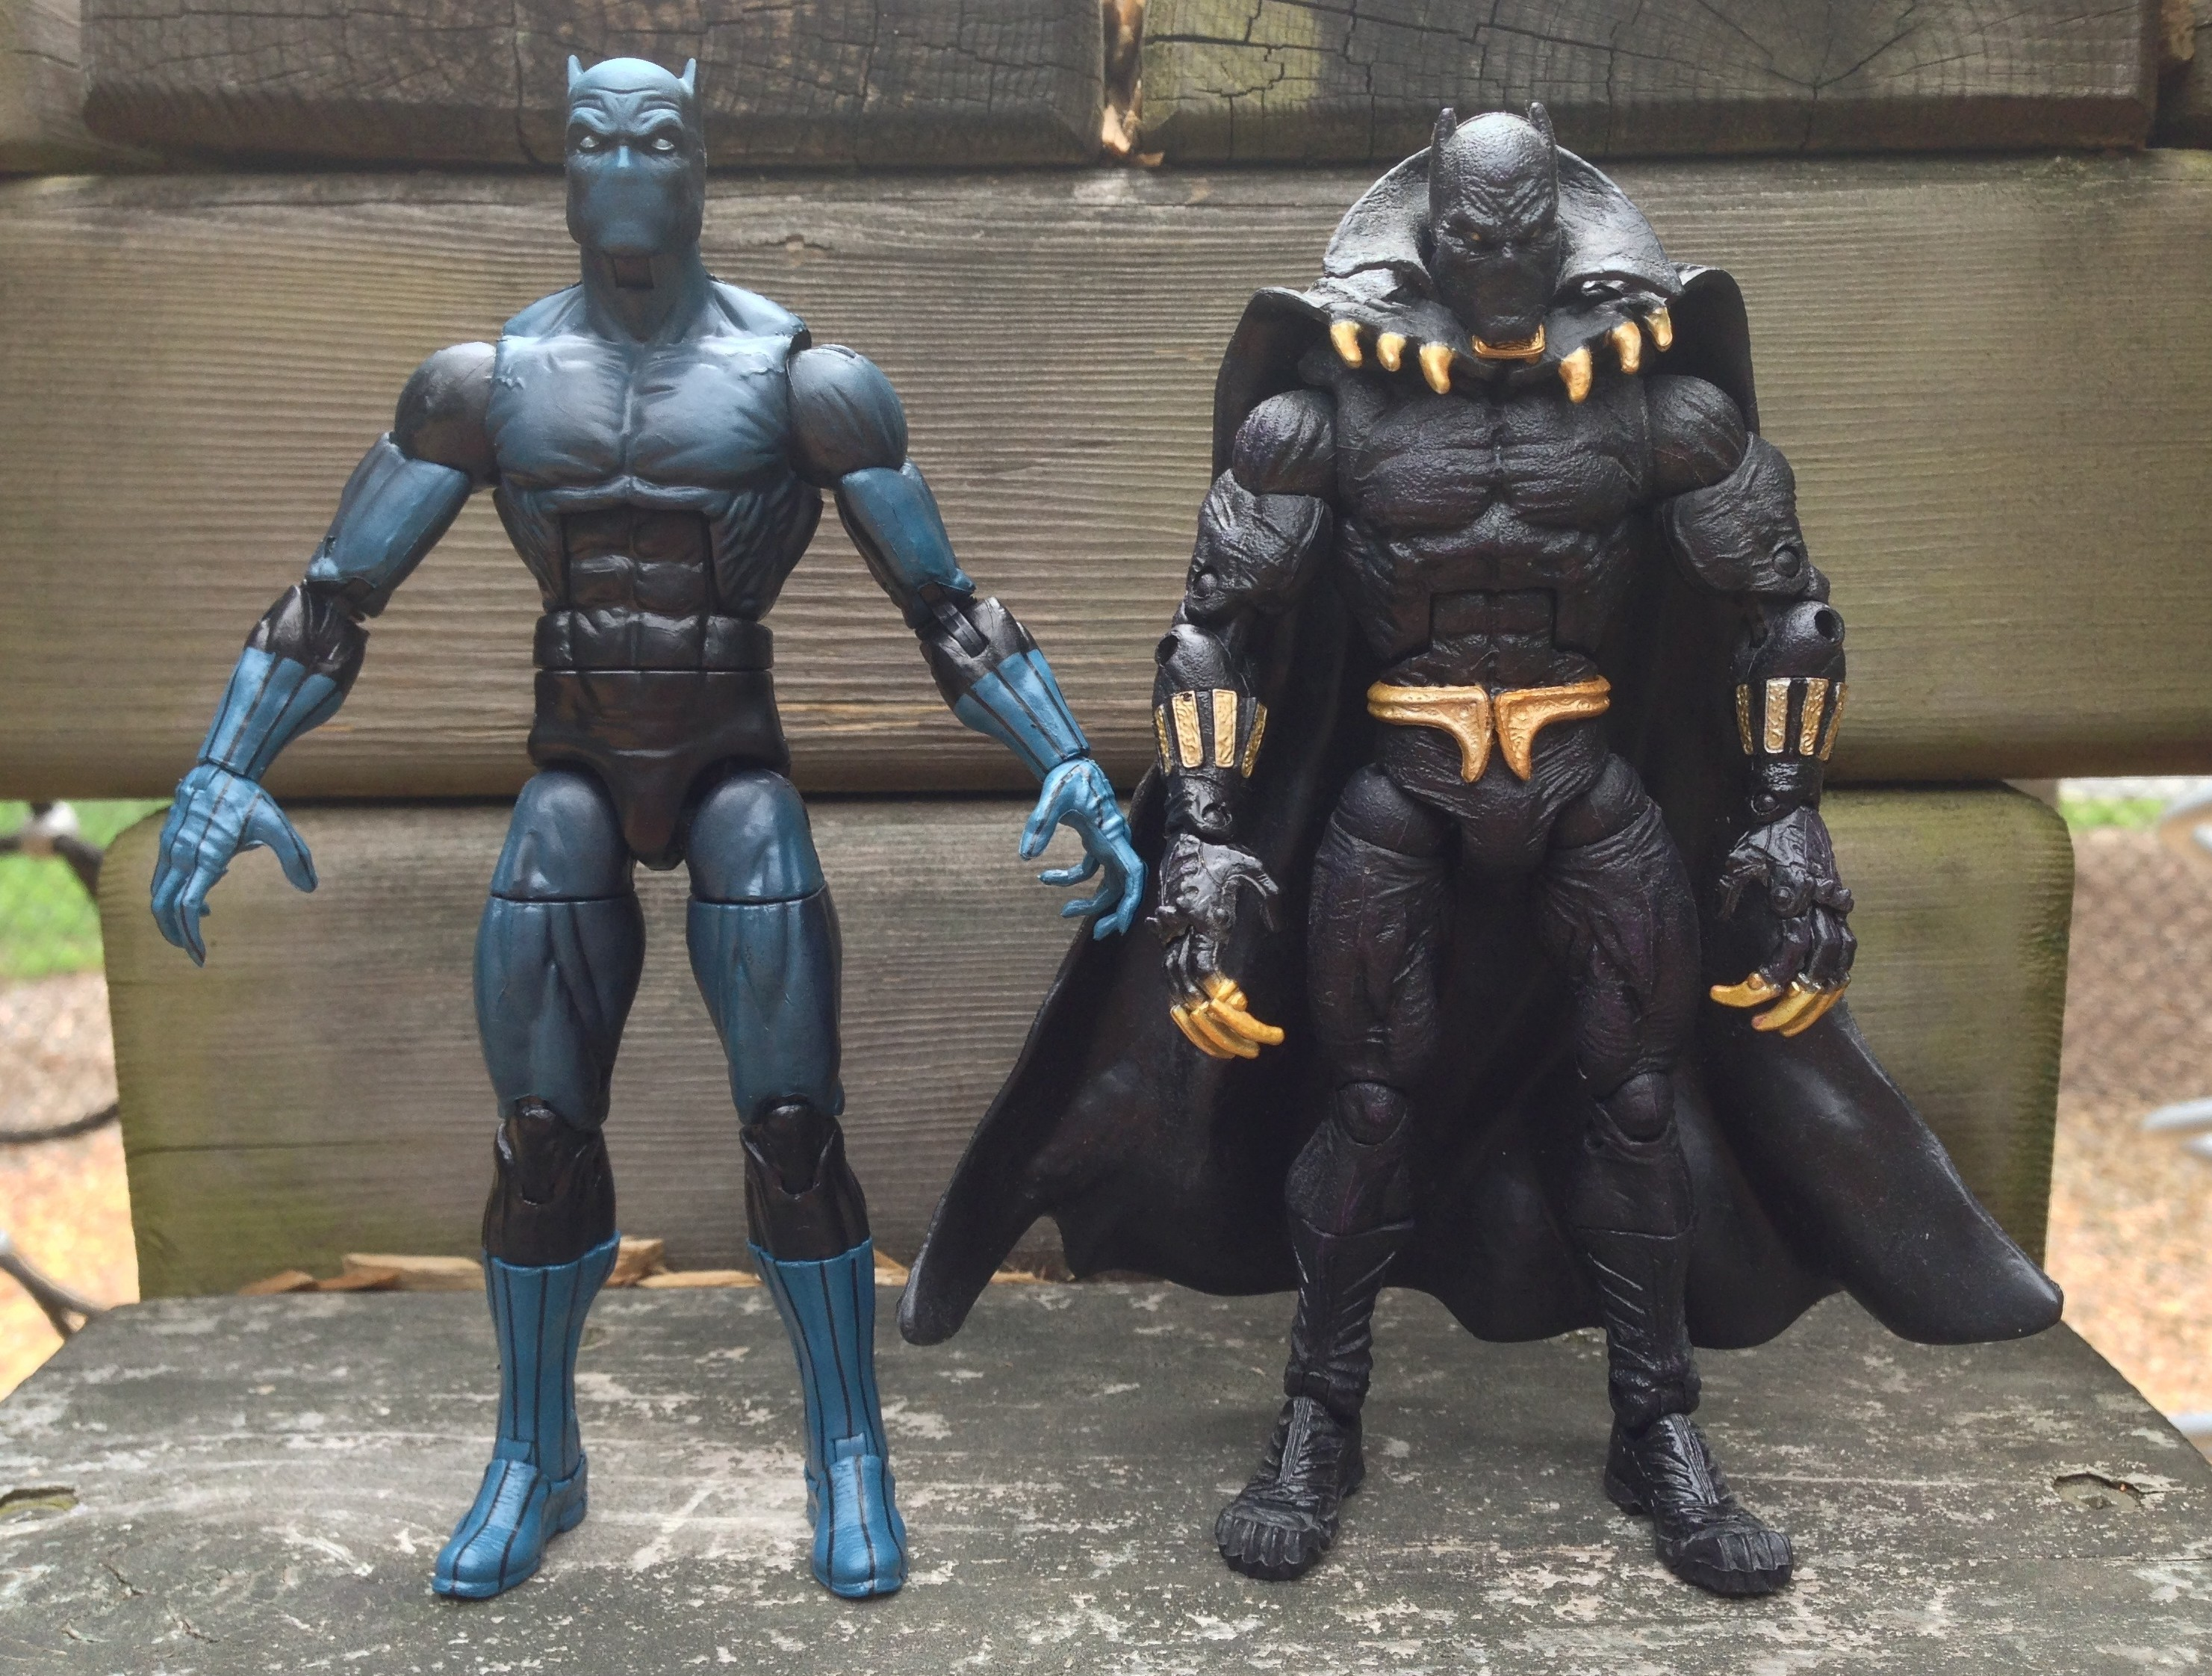 Marvel Legends Black Panther Comparison Toybiz vs. Hasbro 2013